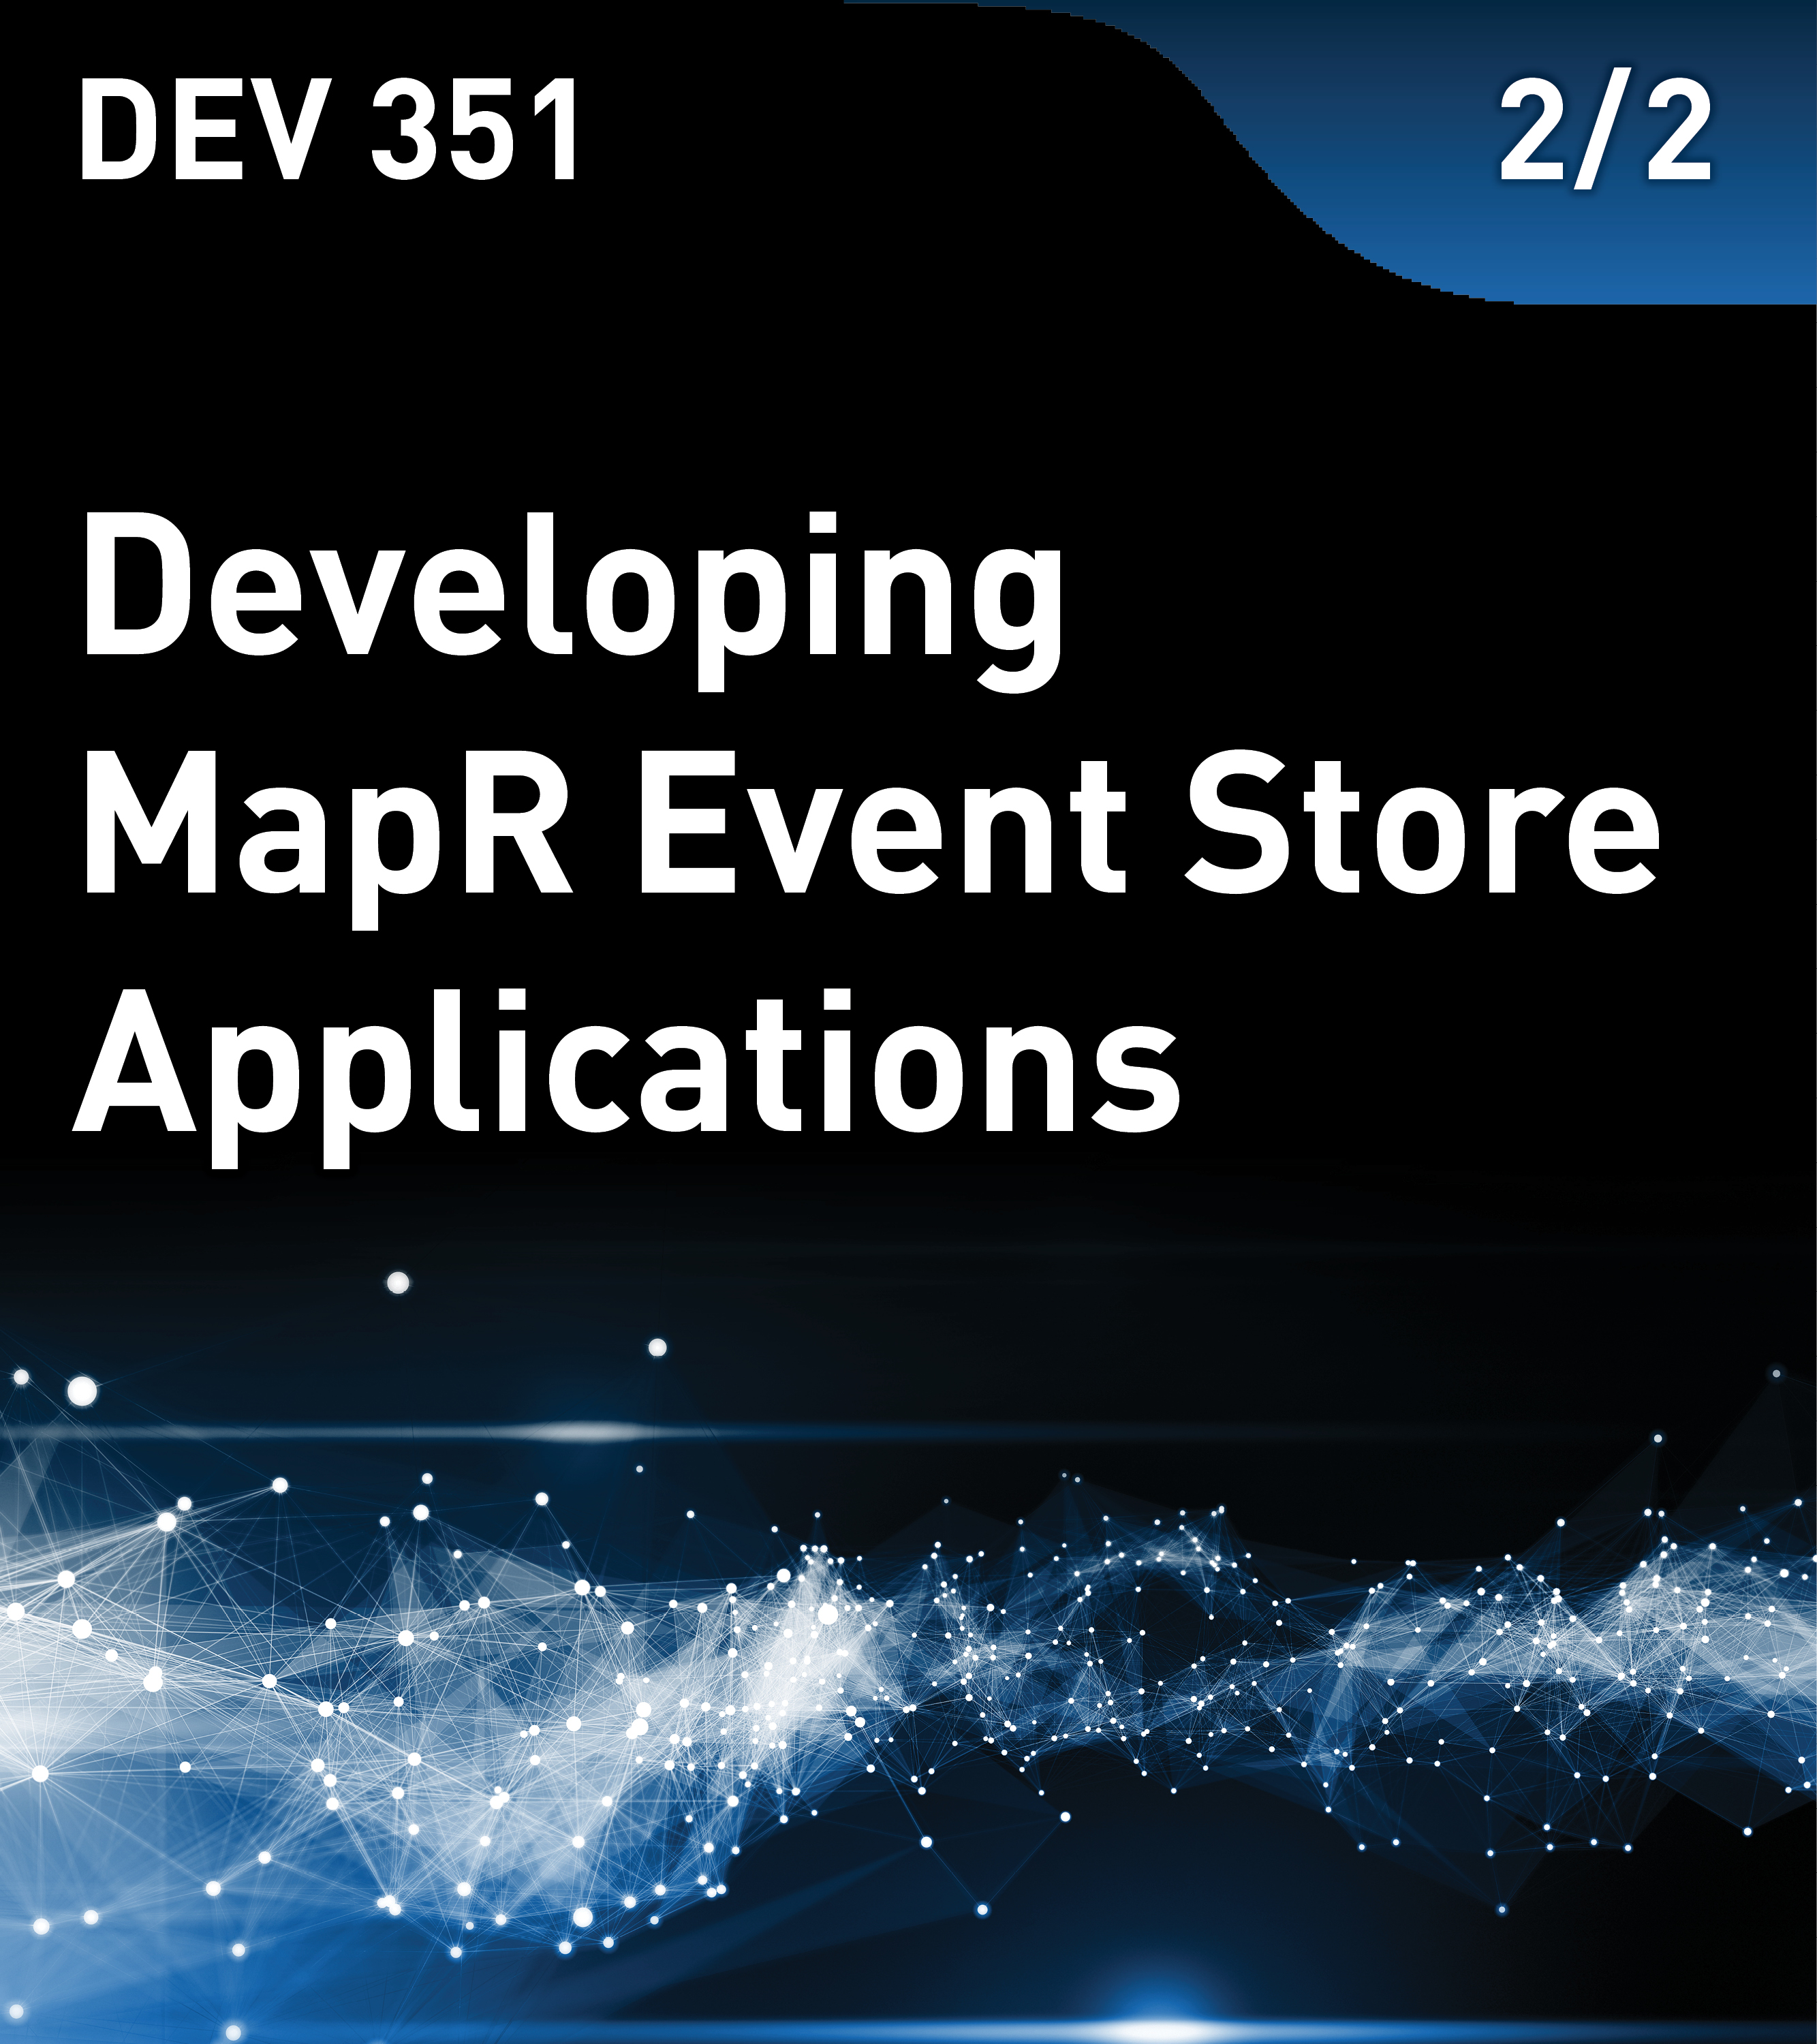 Developing MapR Event Store Applications